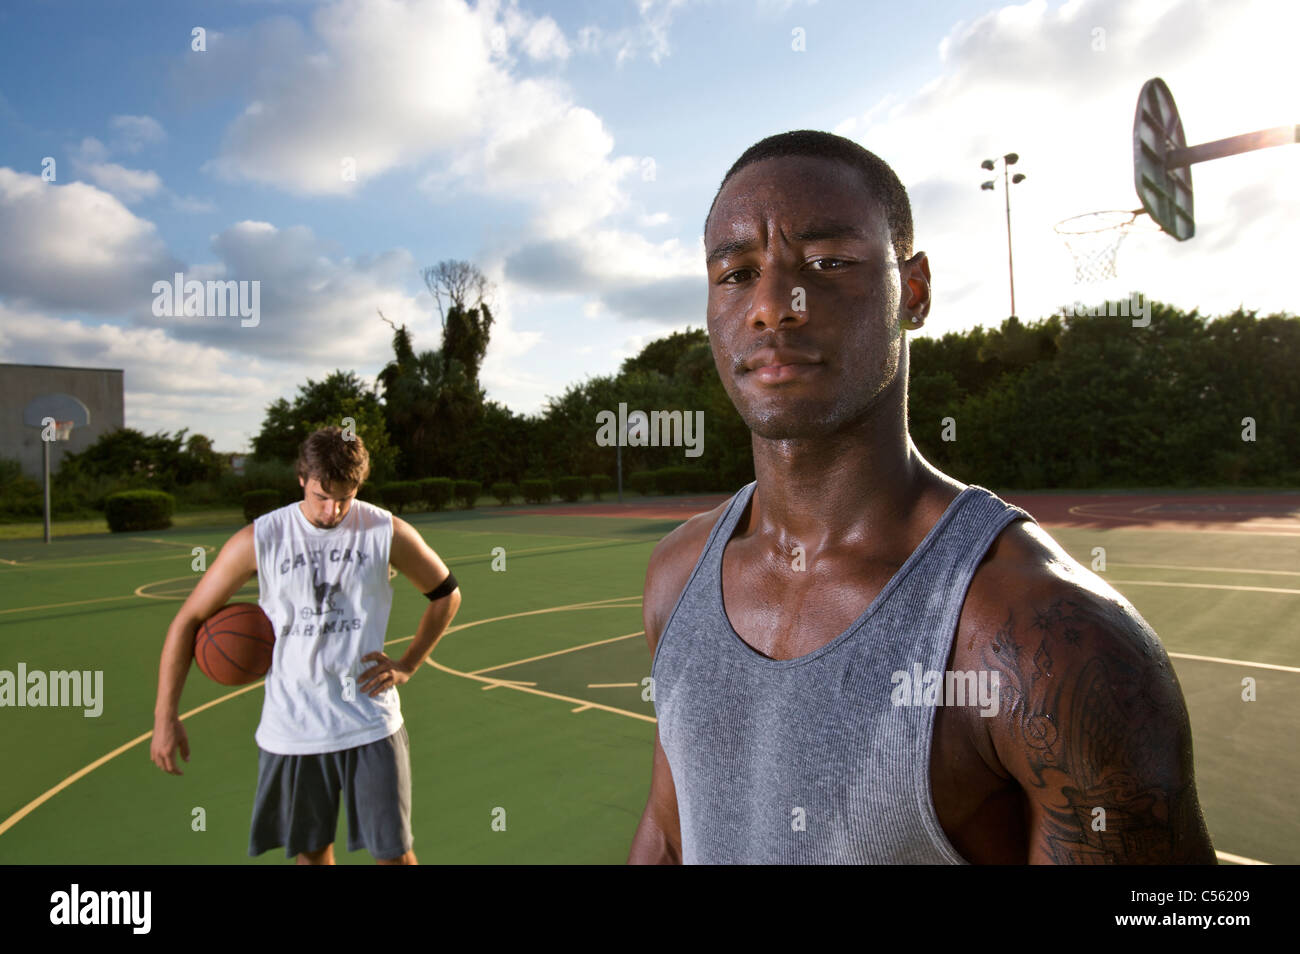 young males on outdoor basketball court - Stock Image